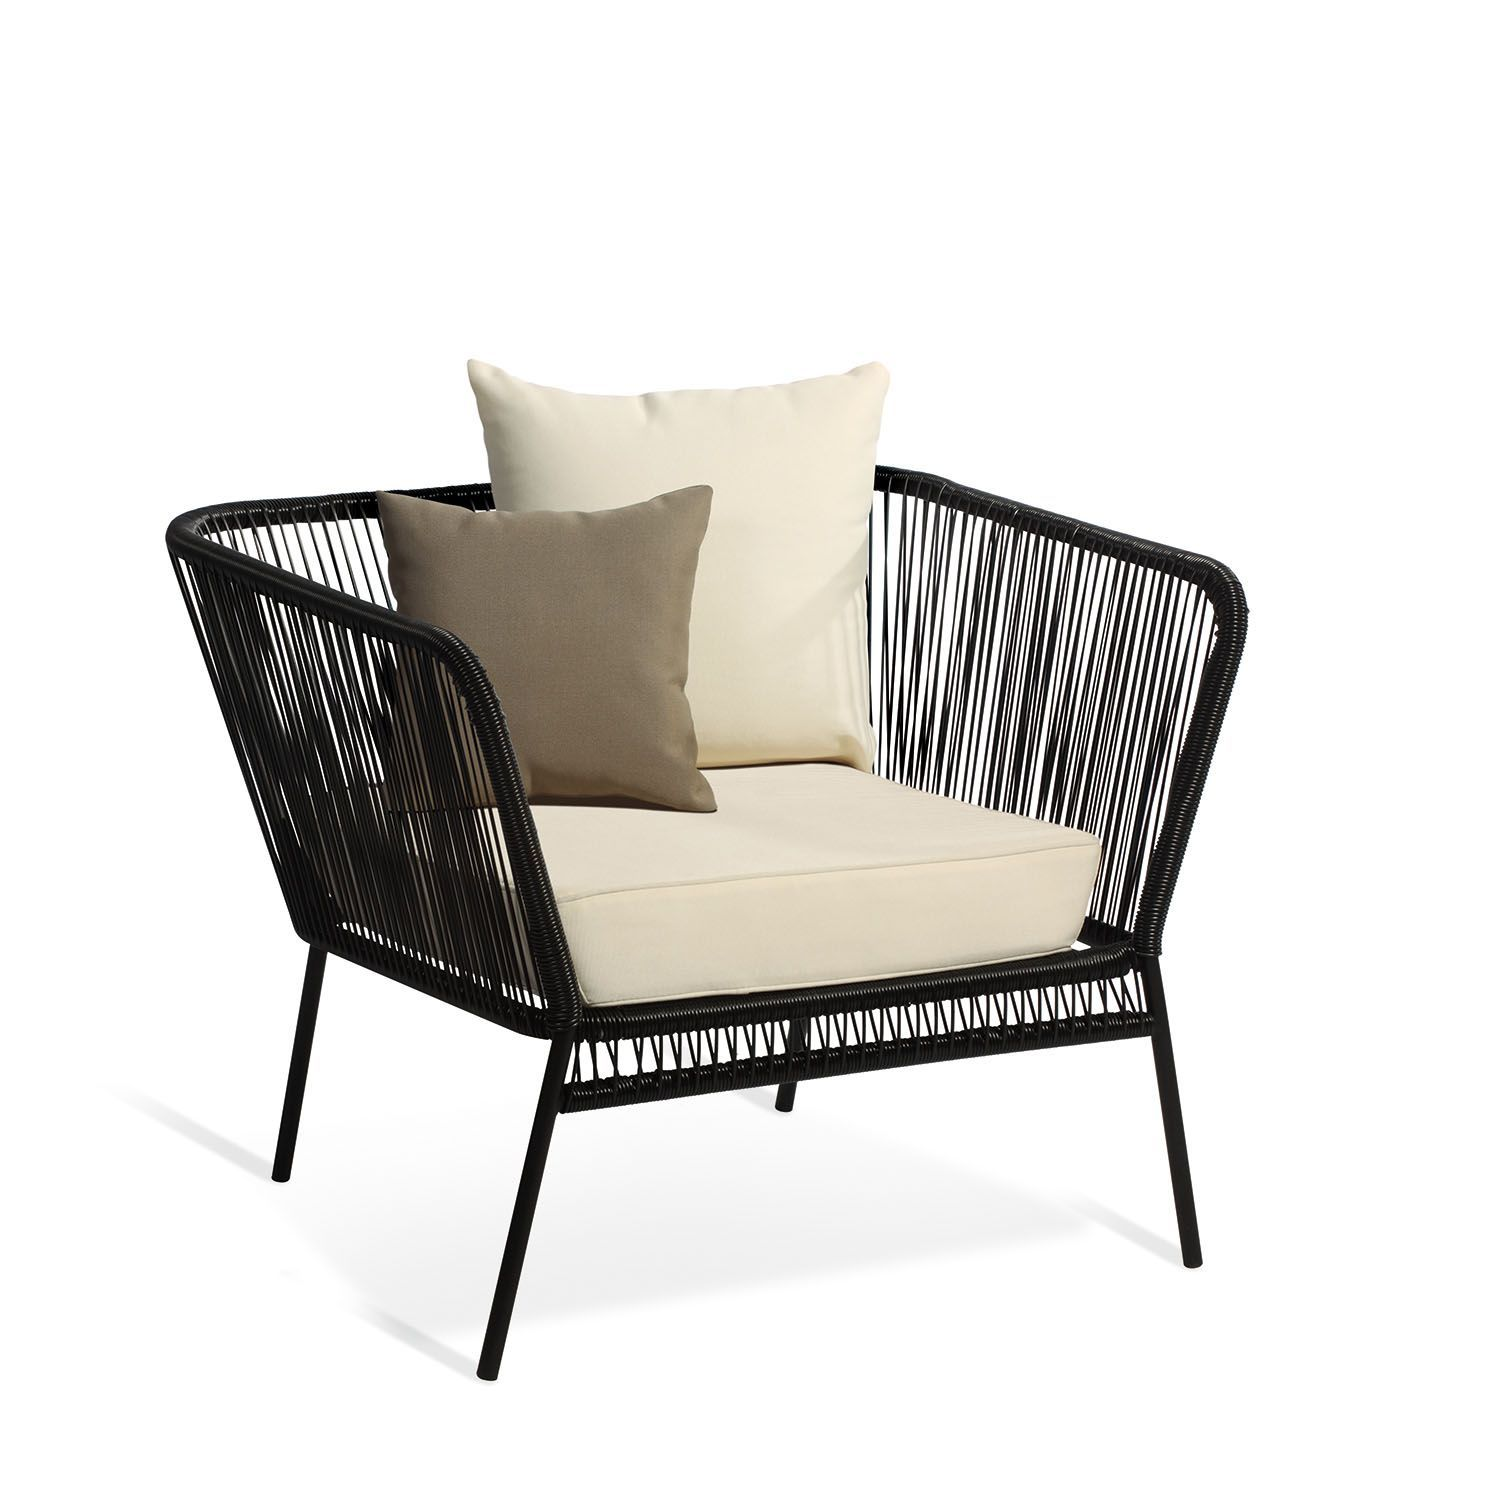 Modern classic armchair - Armchair 1 Place With Cushions Mexico Chairs Design Icon Acapulco Modern Classicchair